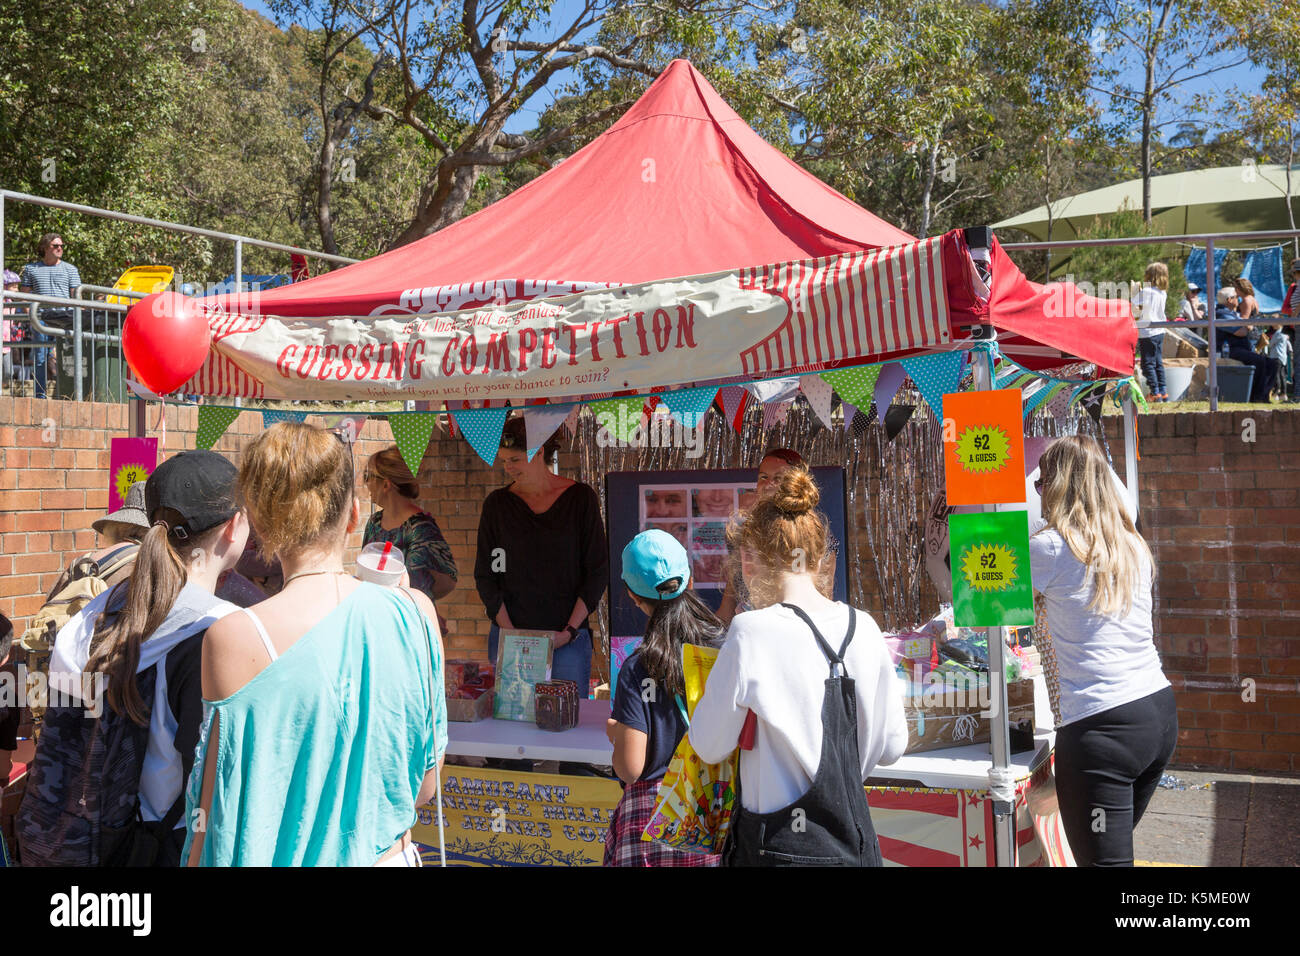 Guessing competition stall for traditional fun, at an Australian school fete fair in Sydney,Australia - Stock Image